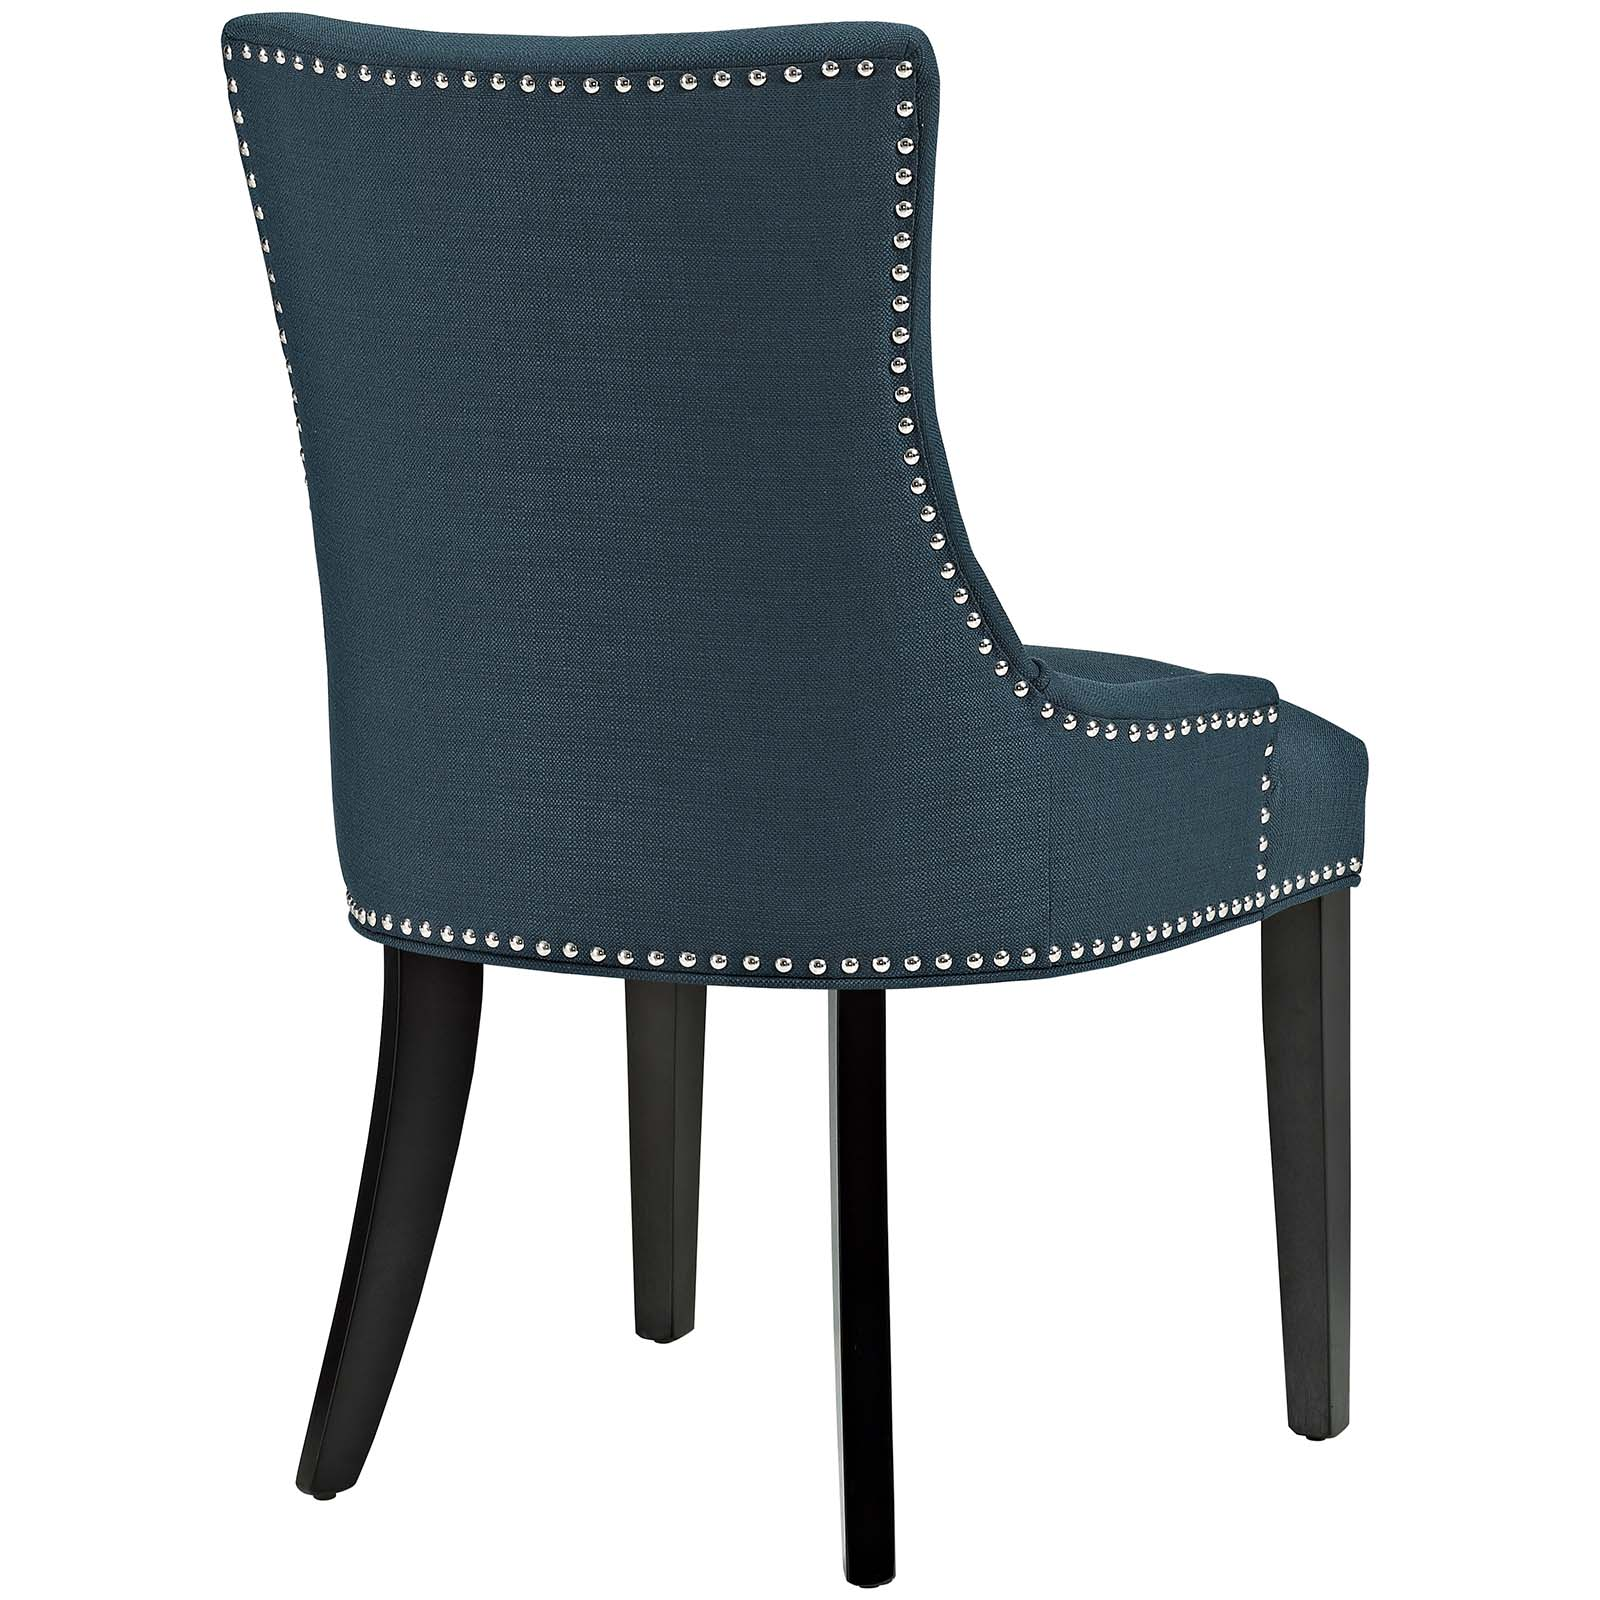 Outstanding Modern Contemporary Urban Design Kitchen Room Dining Chair Navy Blue Fabric Wood Caraccident5 Cool Chair Designs And Ideas Caraccident5Info